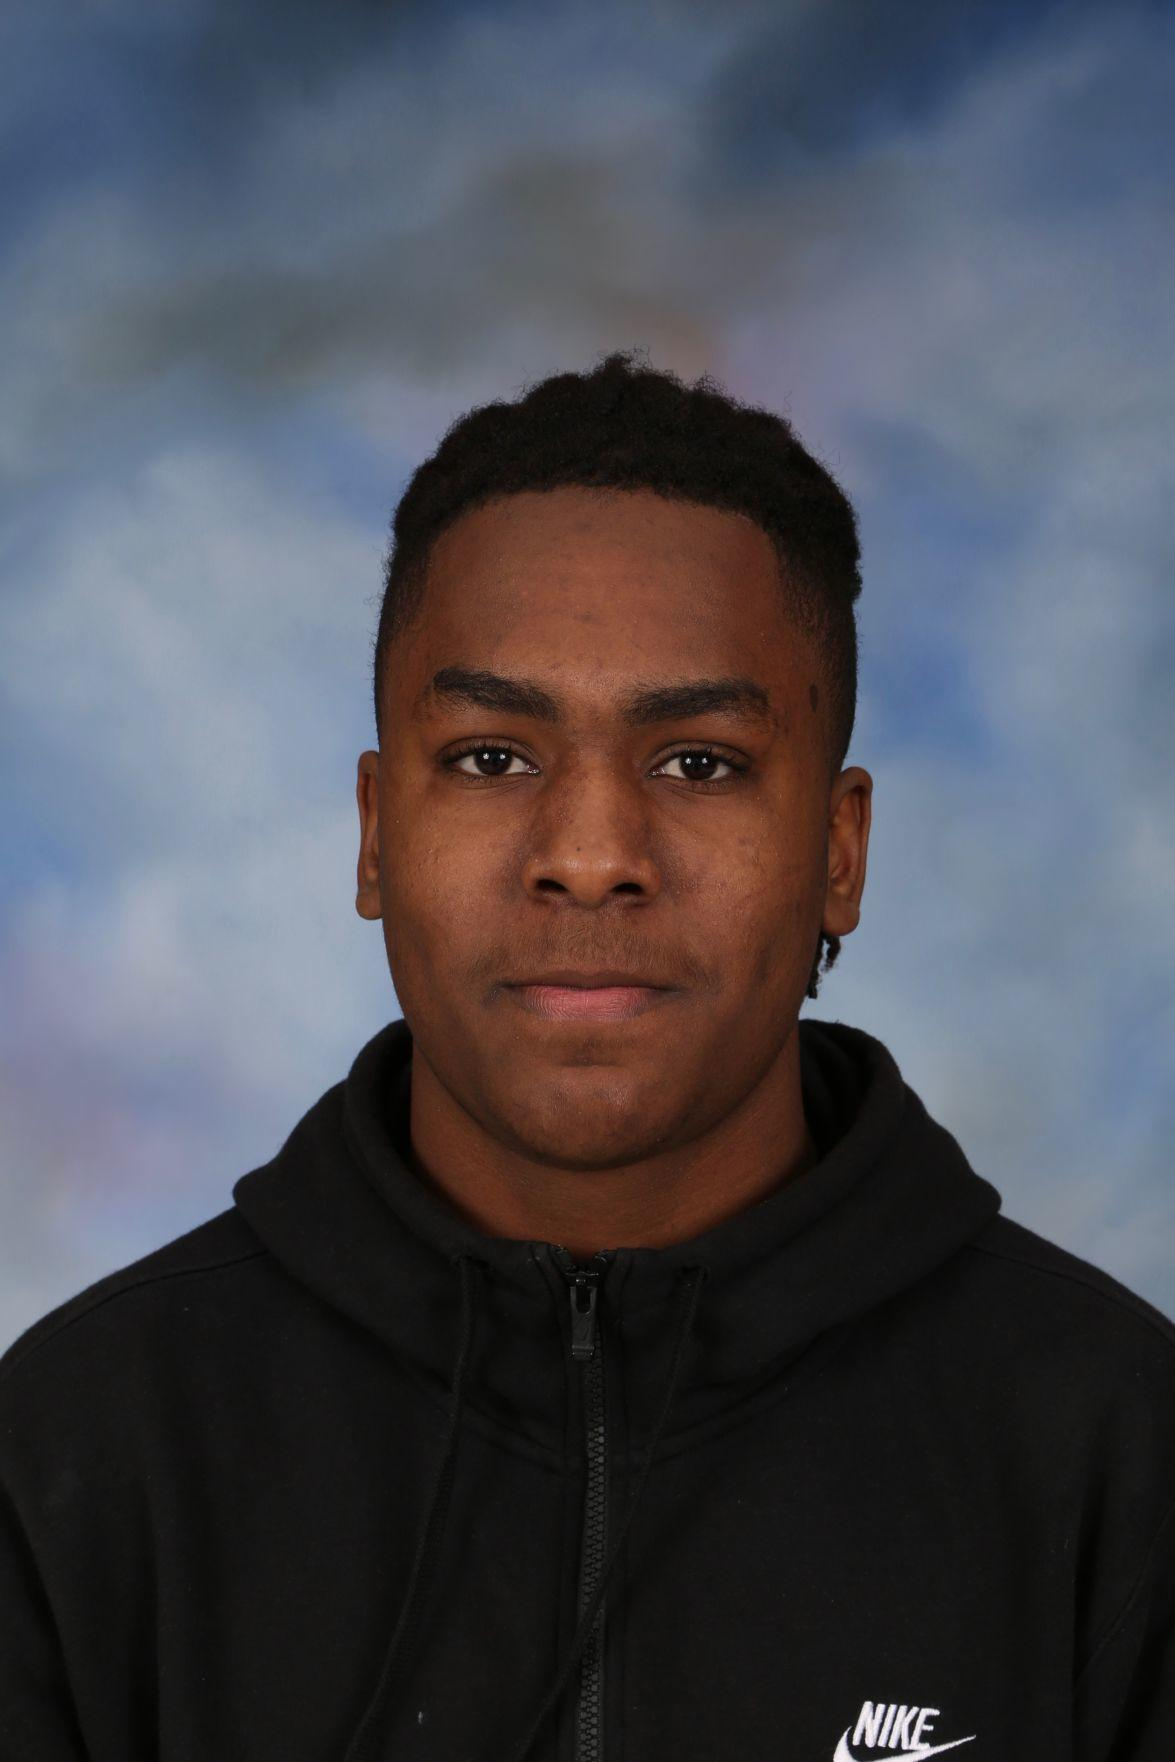 Shannon football player dies after collapsing at practice